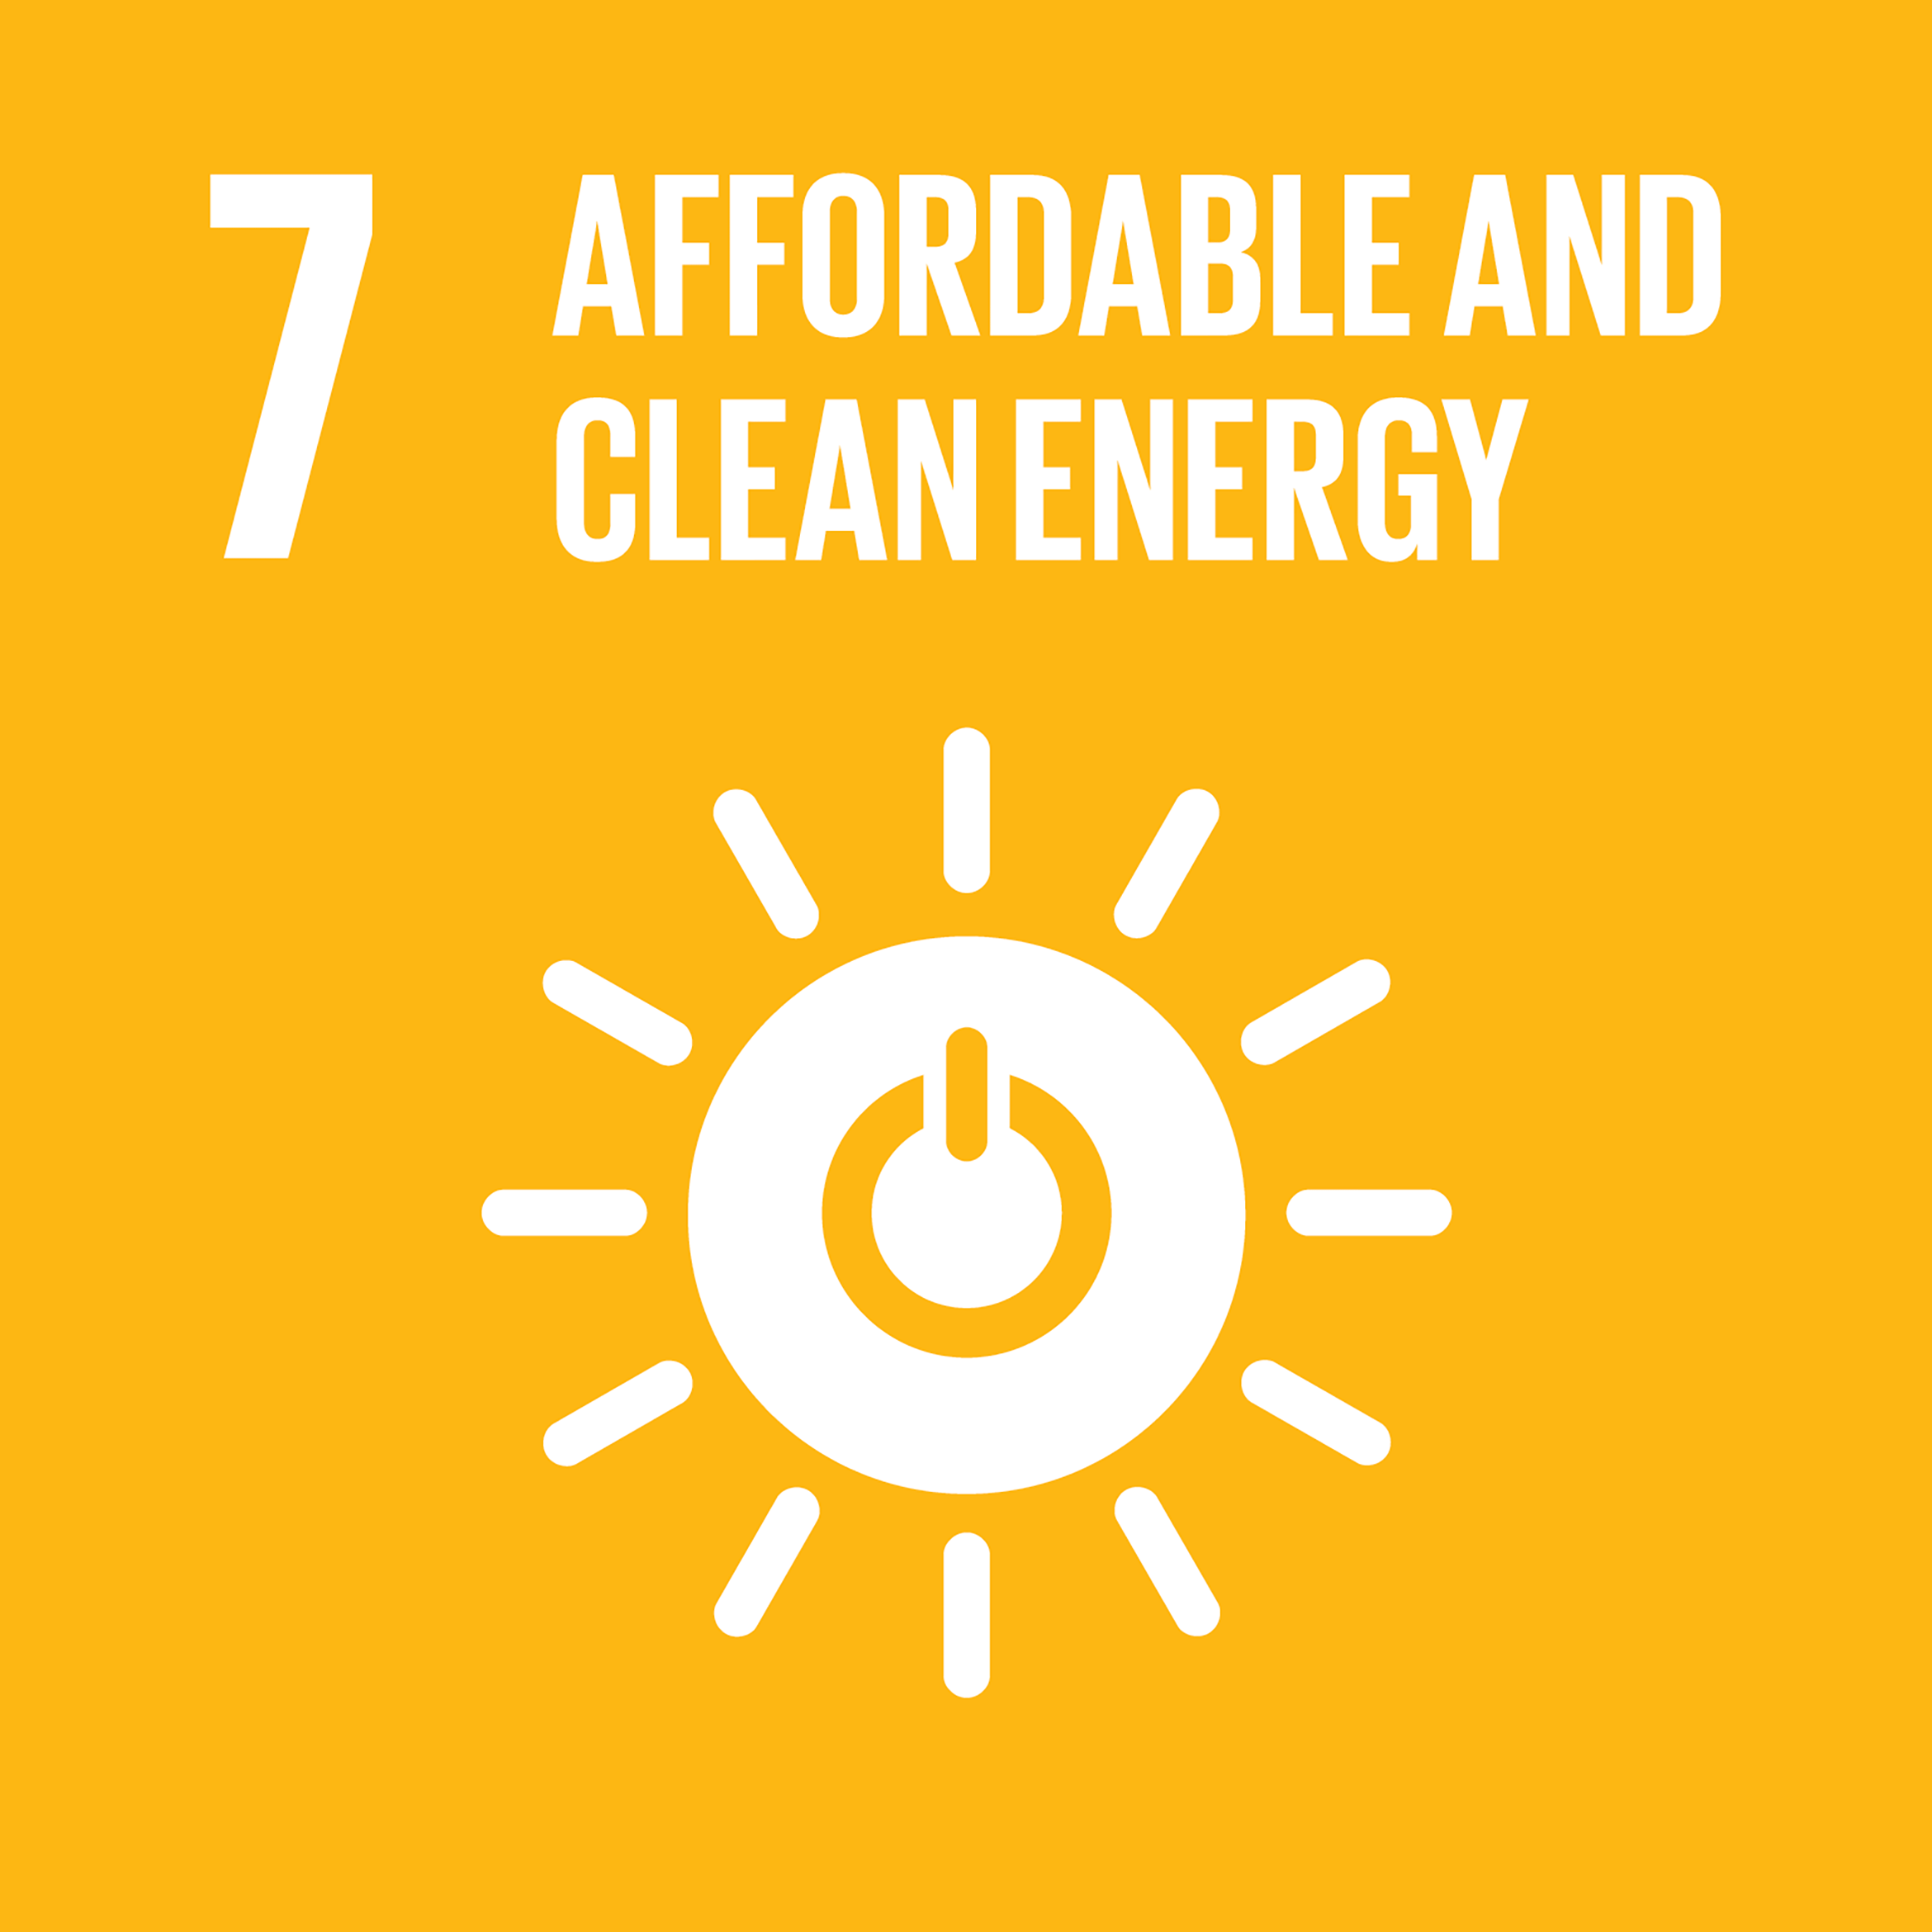 SDG-affordable-clean-energy